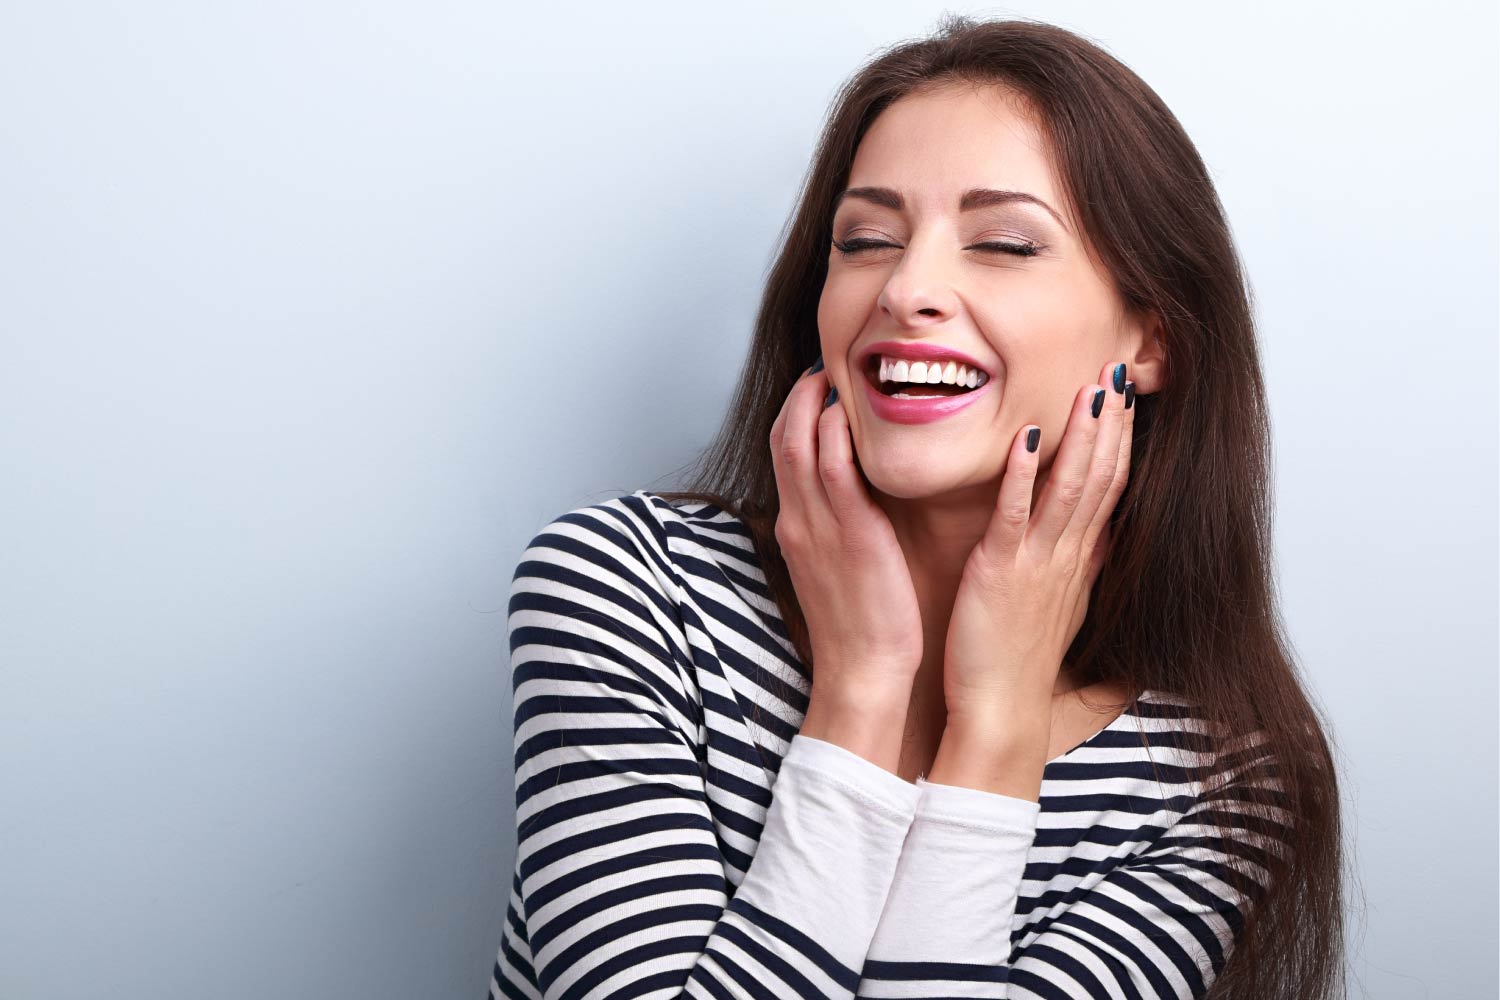 Brunette Woman In A Striped Shirt Smiles With A Bright White Smile After Cosmetic Dentistry